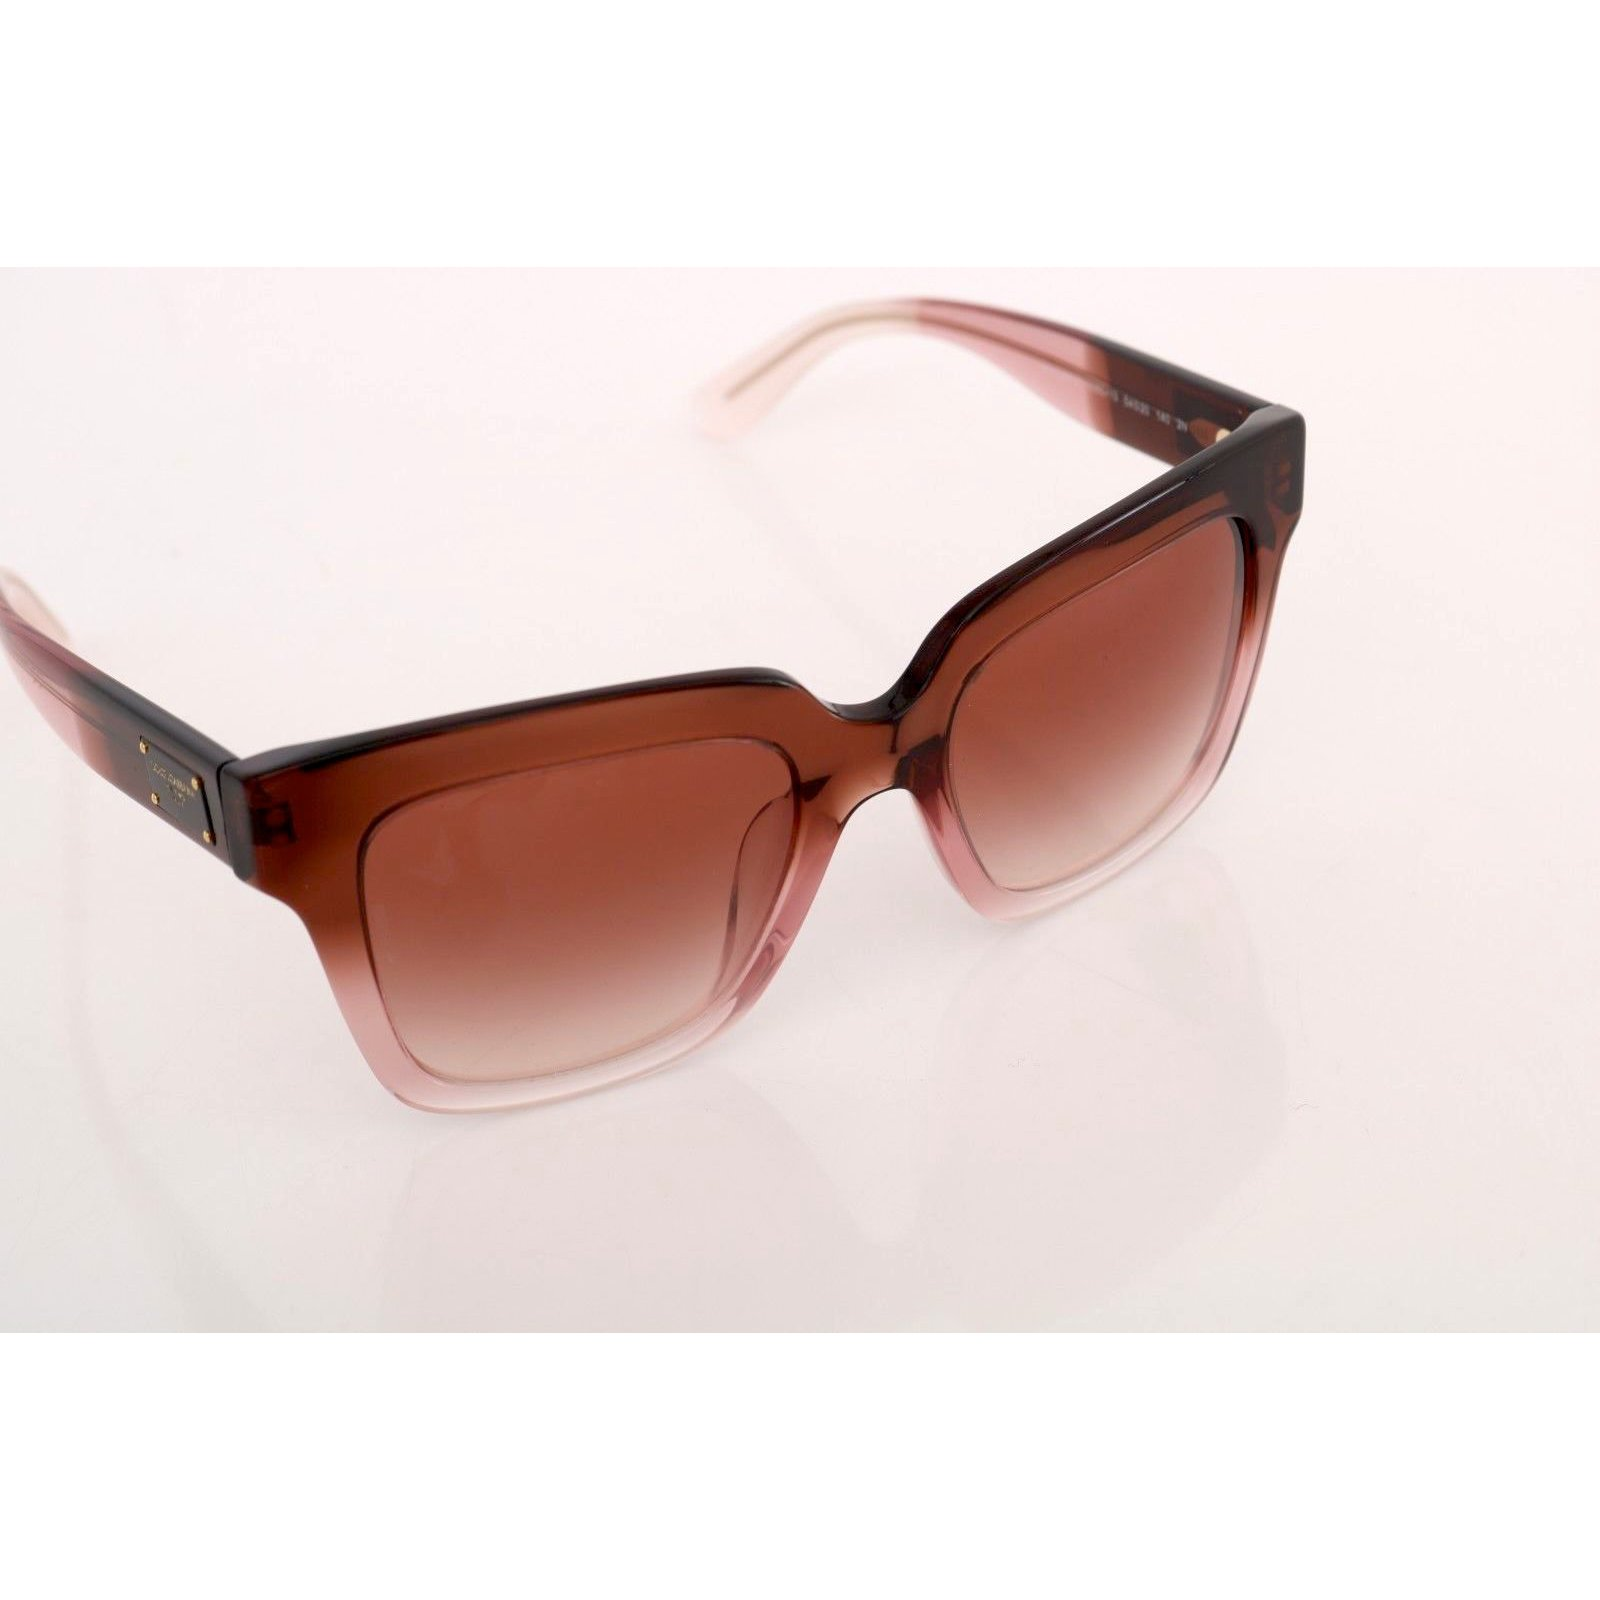 bd86d63590e1 Dolce & Gabbana DOLCE & GABBANA Sunglasses DG4286-F 3060/13 Pink Square Logo  Gradient Sunglasses Other Brown ref.93796 - Joli Closet